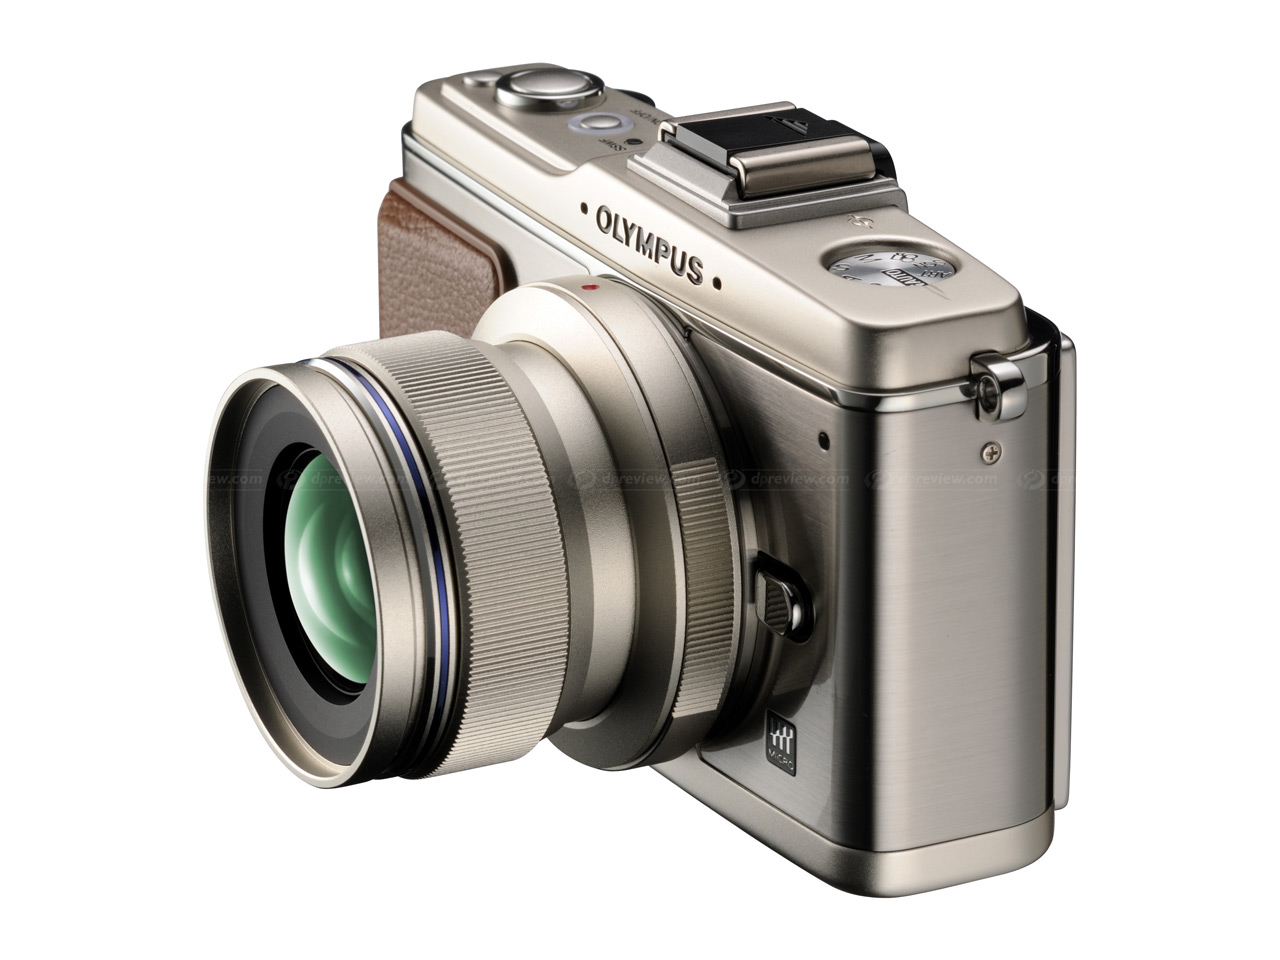 Olympus shows M Zuiko high-end Micro Four Thirds lens mockup